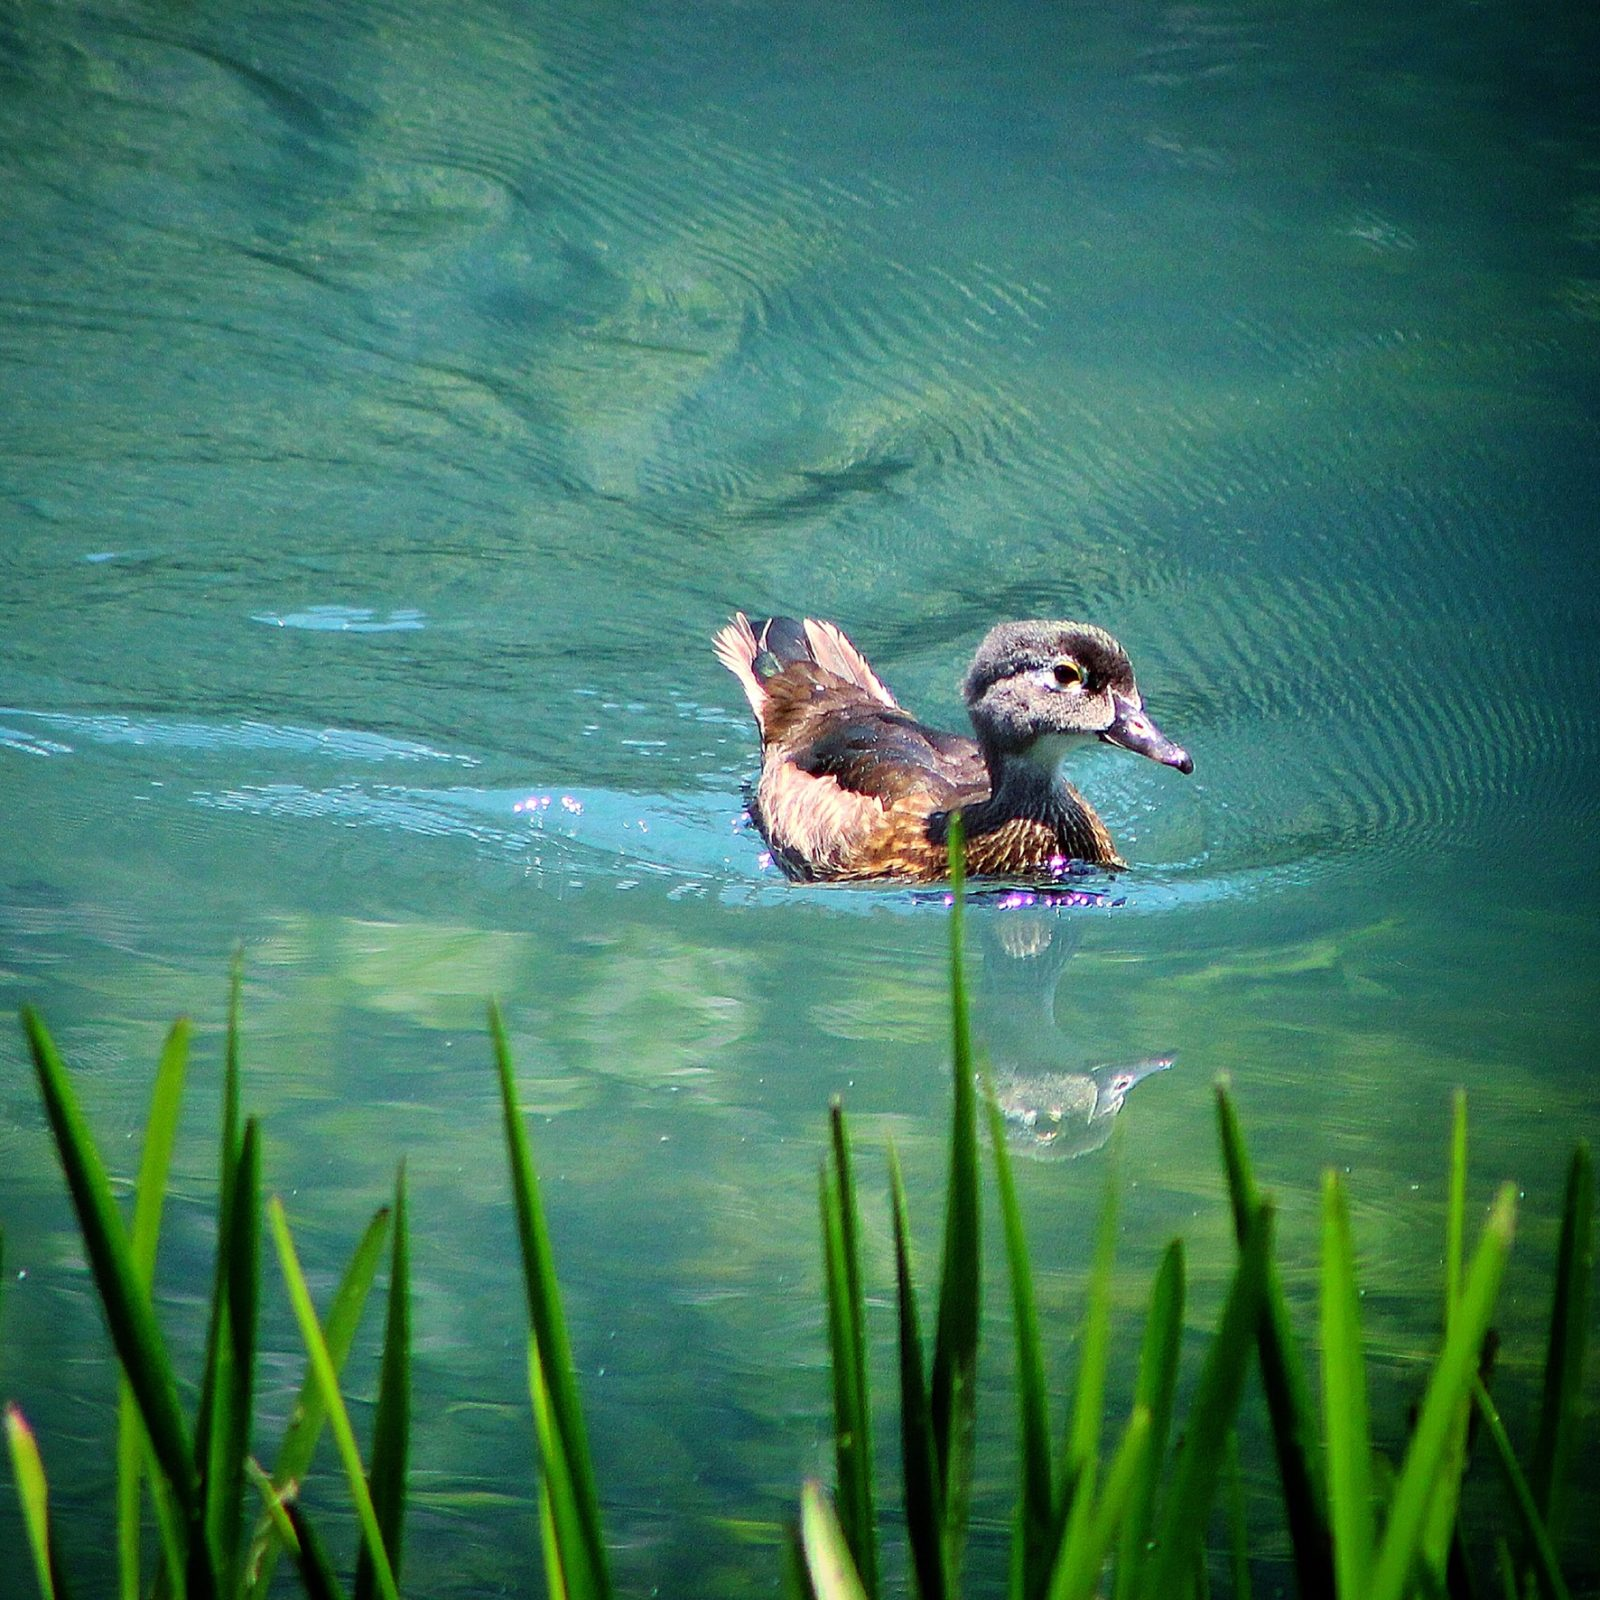 Care free duckling